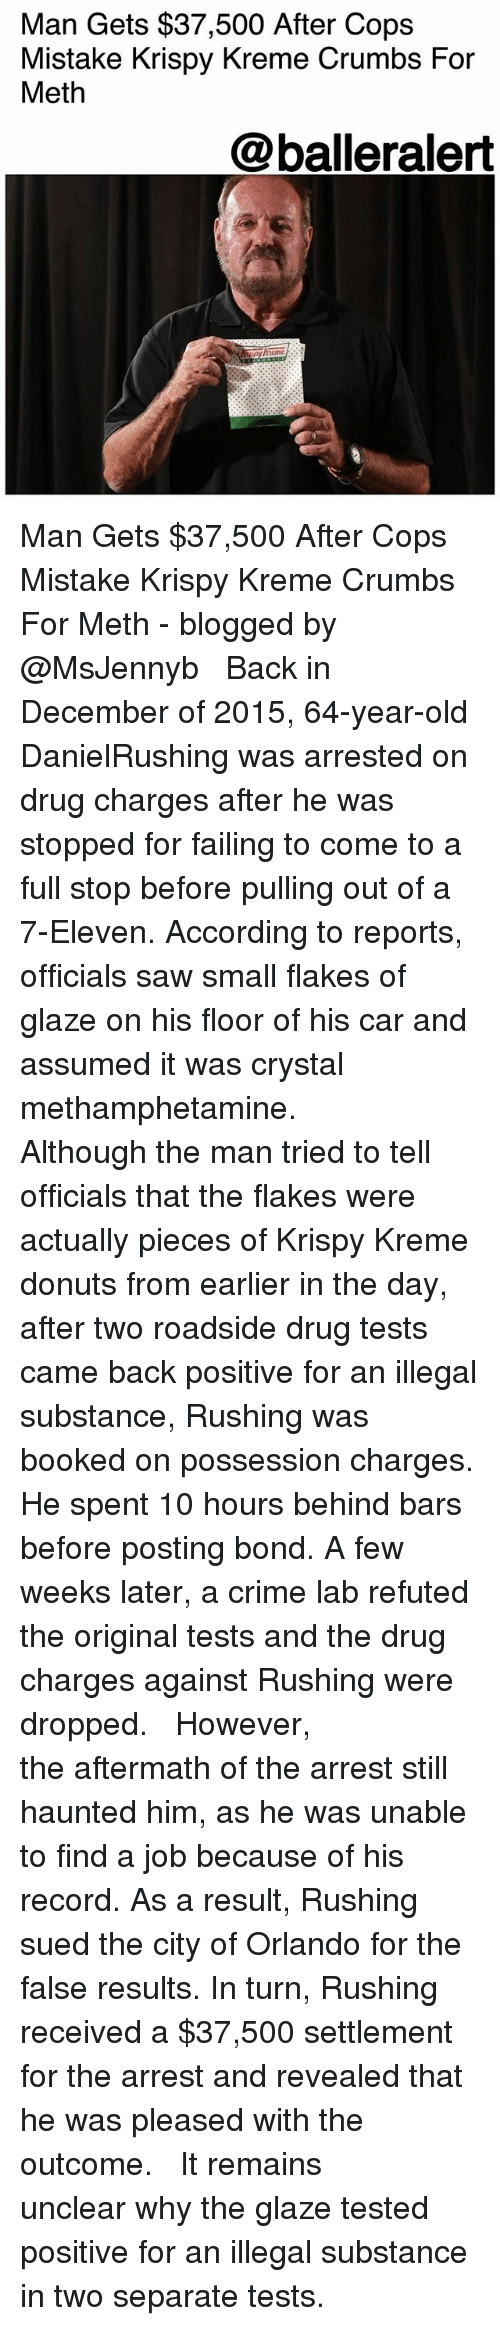 7-Eleven, Crime, and Krispy Kreme: Man Gets $37,500 After Cops  Mistake Krispy Kreme Crumbs For  Meth  @balleralert Man Gets $37,500 After Cops Mistake Krispy Kreme Crumbs For Meth - blogged by @MsJennyb ⠀⠀⠀⠀⠀⠀⠀ ⠀⠀⠀⠀⠀⠀⠀ Back in December of 2015, 64-year-old DanielRushing was arrested on drug charges after he was stopped for failing to come to a full stop before pulling out of a 7-Eleven. According to reports, officials saw small flakes of glaze on his floor of his car and assumed it was crystal methamphetamine. ⠀⠀⠀⠀⠀⠀⠀ ⠀⠀⠀⠀⠀⠀⠀ Although the man tried to tell officials that the flakes were actually pieces of Krispy Kreme donuts from earlier in the day, after two roadside drug tests came back positive for an illegal substance, Rushing was booked on possession charges. He spent 10 hours behind bars before posting bond. A few weeks later, a crime lab refuted the original tests and the drug charges against Rushing were dropped. ⠀⠀⠀⠀⠀⠀⠀ ⠀⠀⠀⠀⠀⠀⠀ However, the aftermath of the arrest still haunted him, as he was unable to find a job because of his record. As a result, Rushing sued the city of Orlando for the false results. In turn, Rushing received a $37,500 settlement for the arrest and revealed that he was pleased with the outcome. ⠀⠀⠀⠀⠀⠀⠀ ⠀⠀⠀⠀⠀⠀⠀ It remains unclear why the glaze tested positive for an illegal substance in two separate tests.